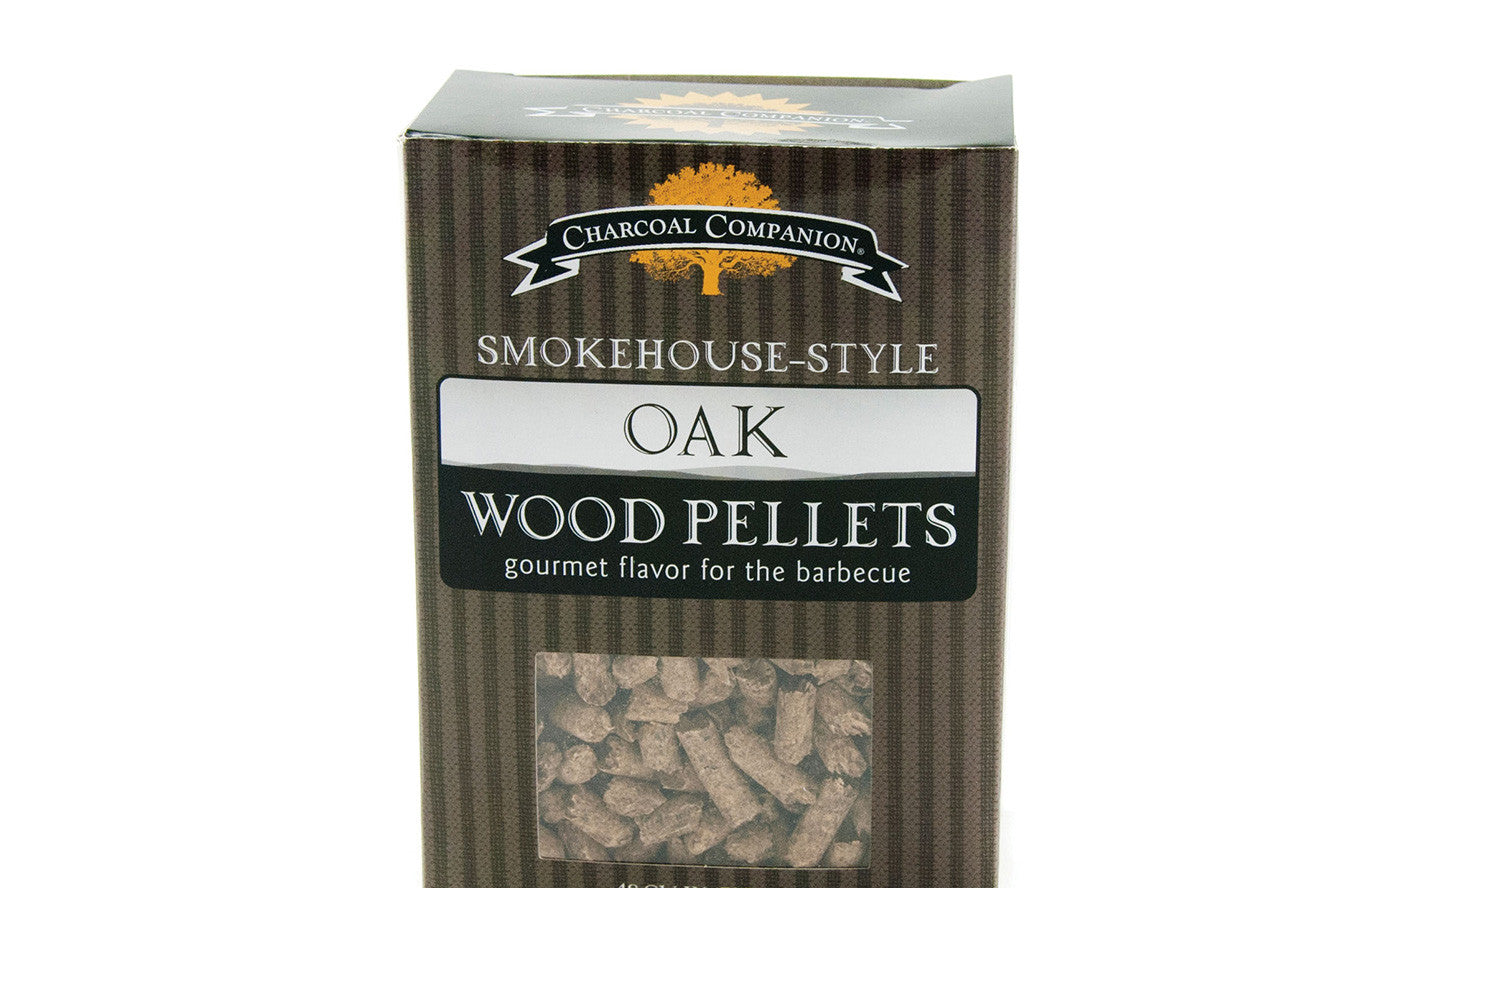 Smokehouse-Style Flavored Wood Pellets - Pizzacraft | Pizzacraft